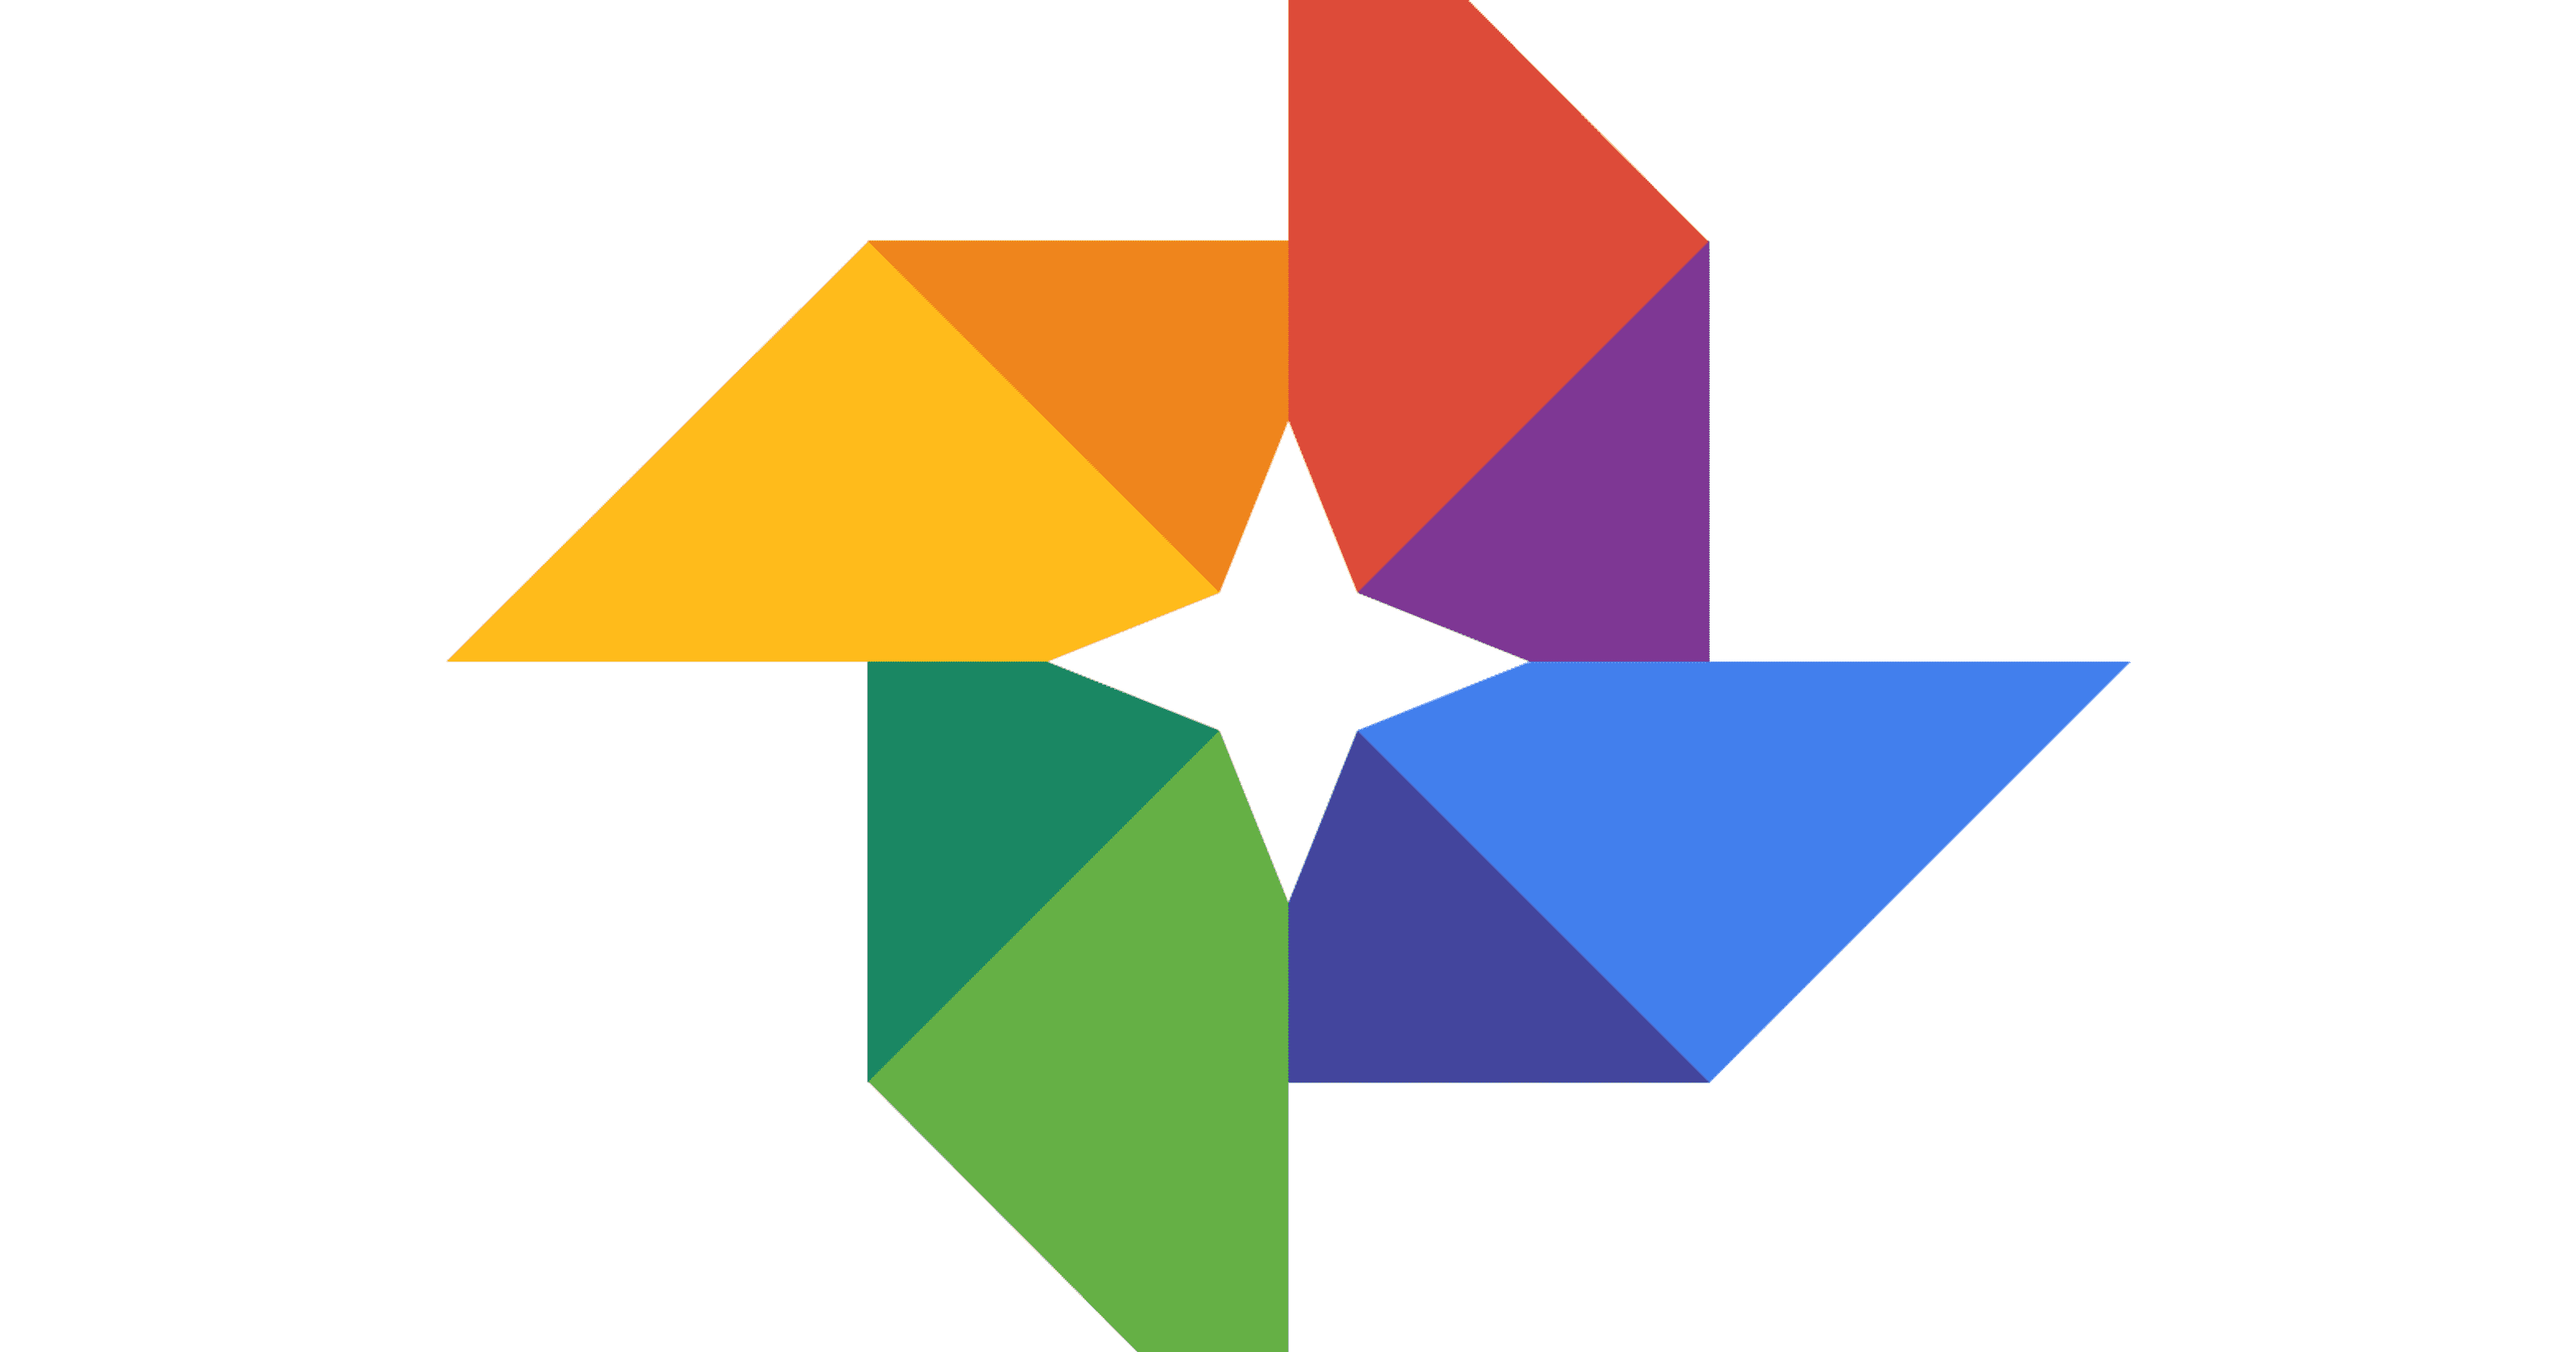 Google Png (101+ images in Collection) Page 1.